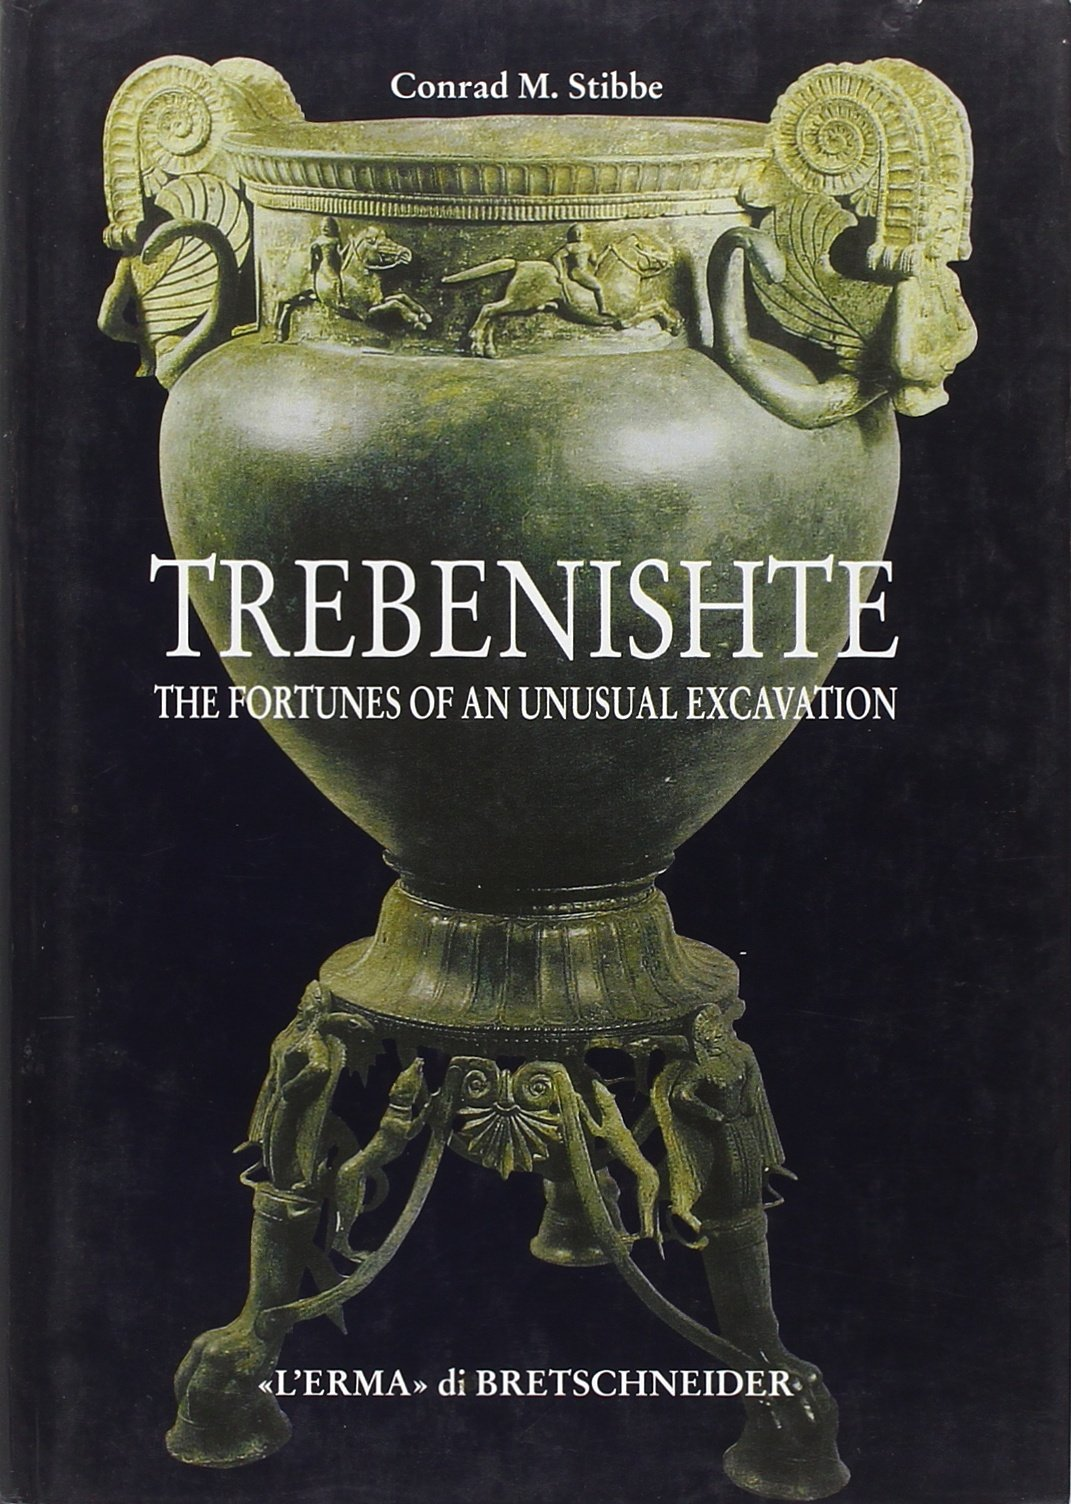 Download Trebenishte: The Fortunes of an Unusual Excavation (Studia Archaeologica) (English and Italian Edition) ebook